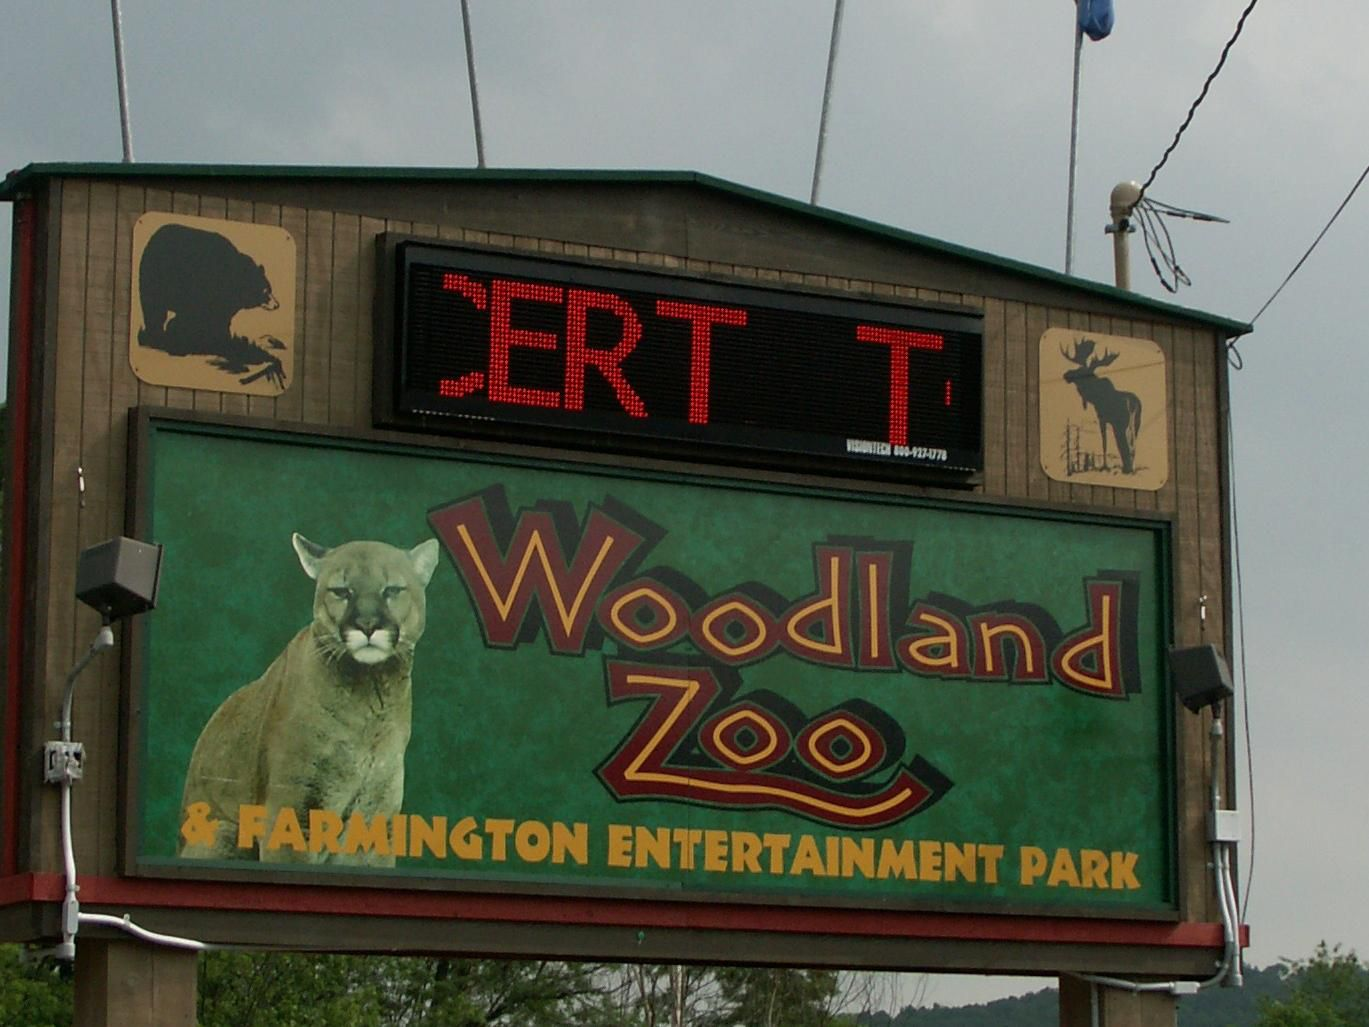 Visit Woodland Zoo during your stay with us!